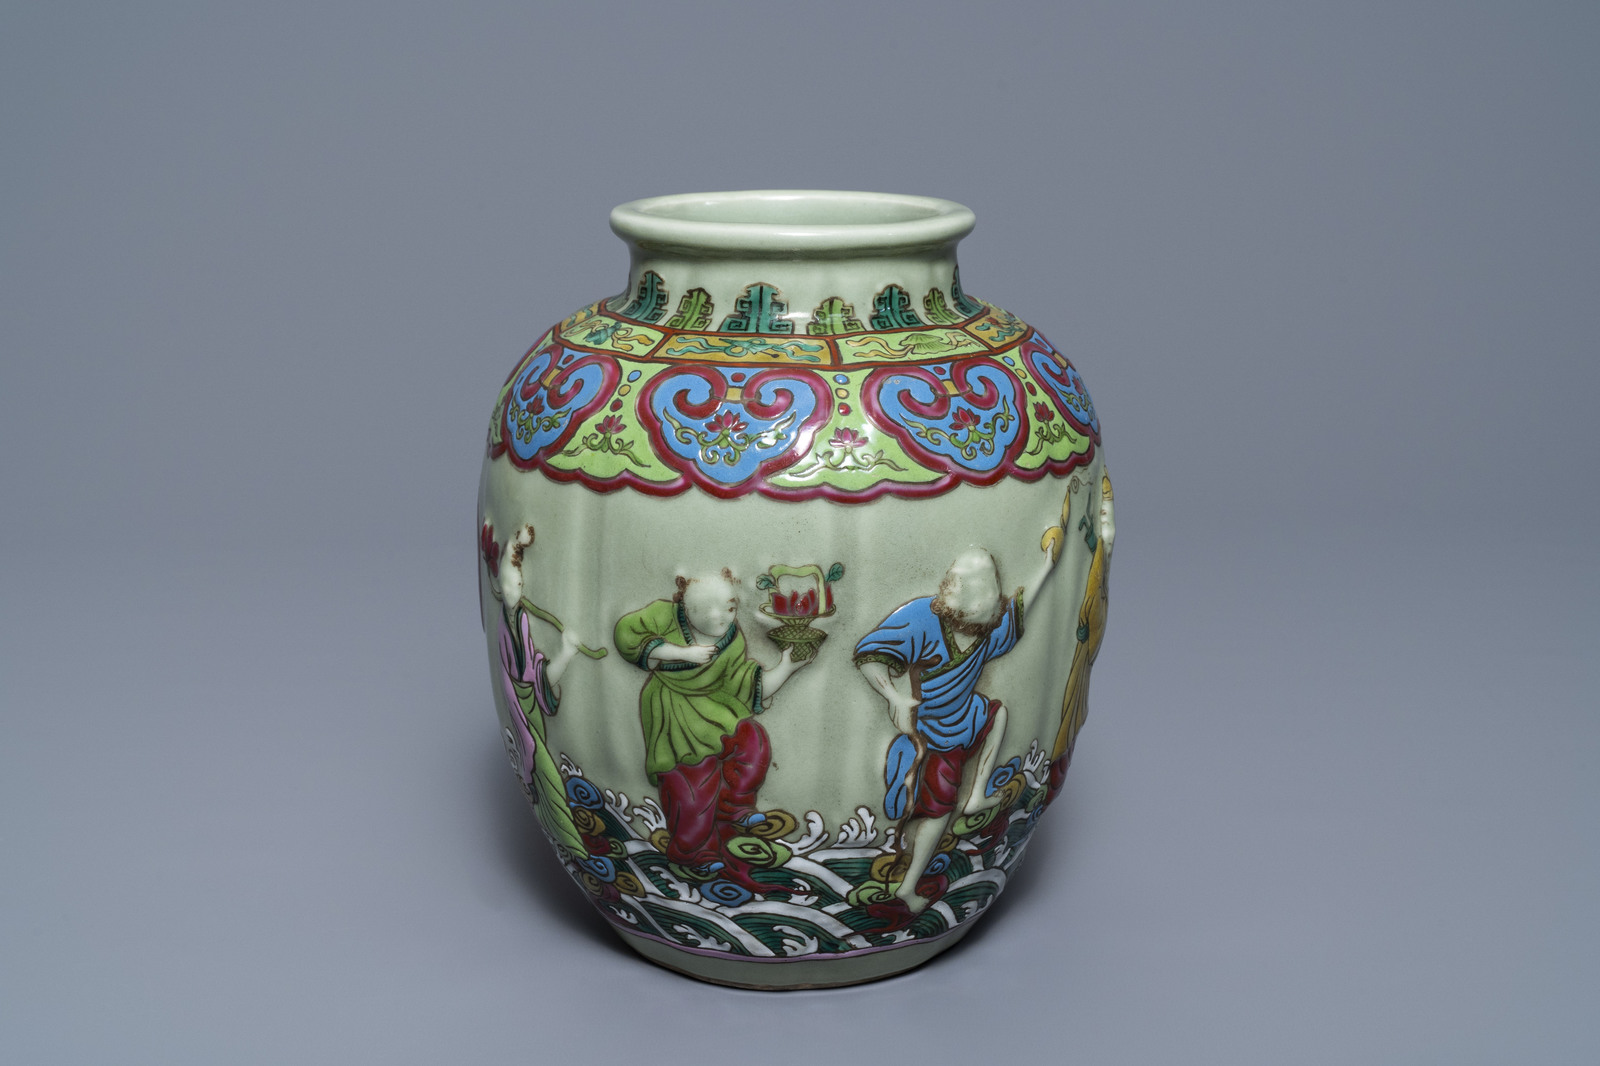 Lot 25 - A Chinese relief-decorated famille rose celadon-ground vase, 19/20th C.